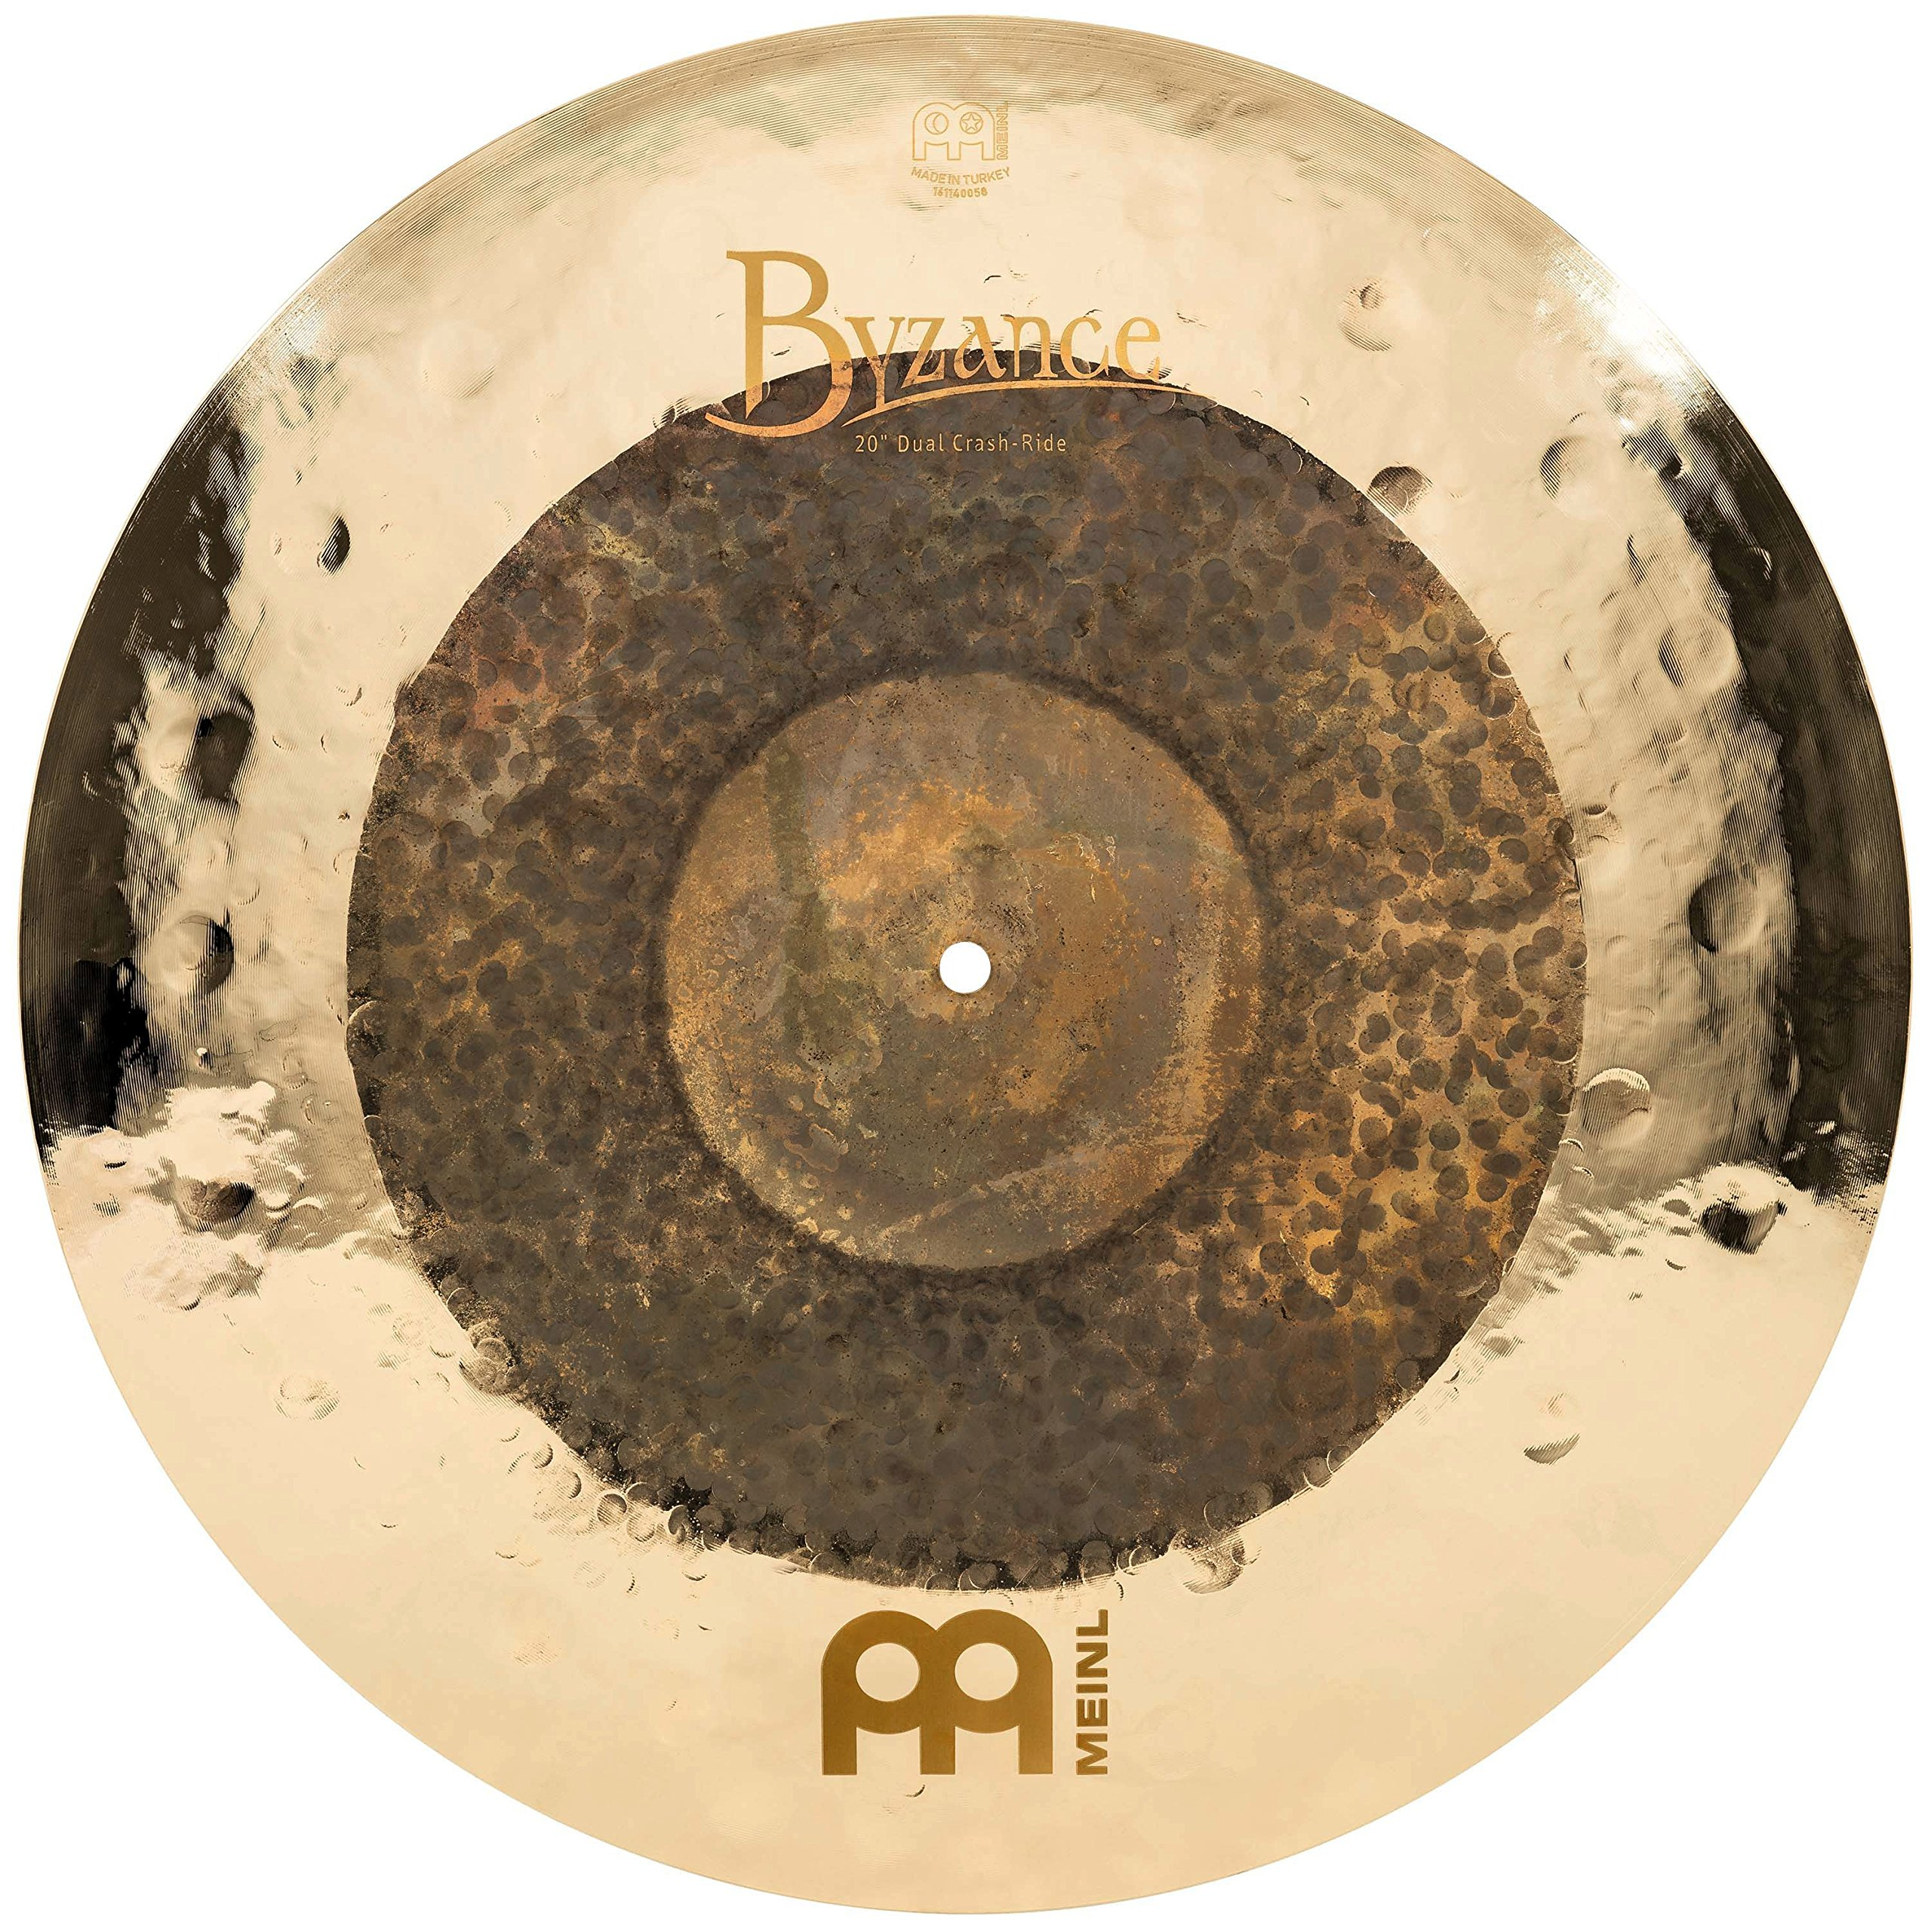 Meinl Cymbals B20DUCR Byzance Extra Dry 20-Inch Dual Crash/Ride Cymbal (VIDEO)